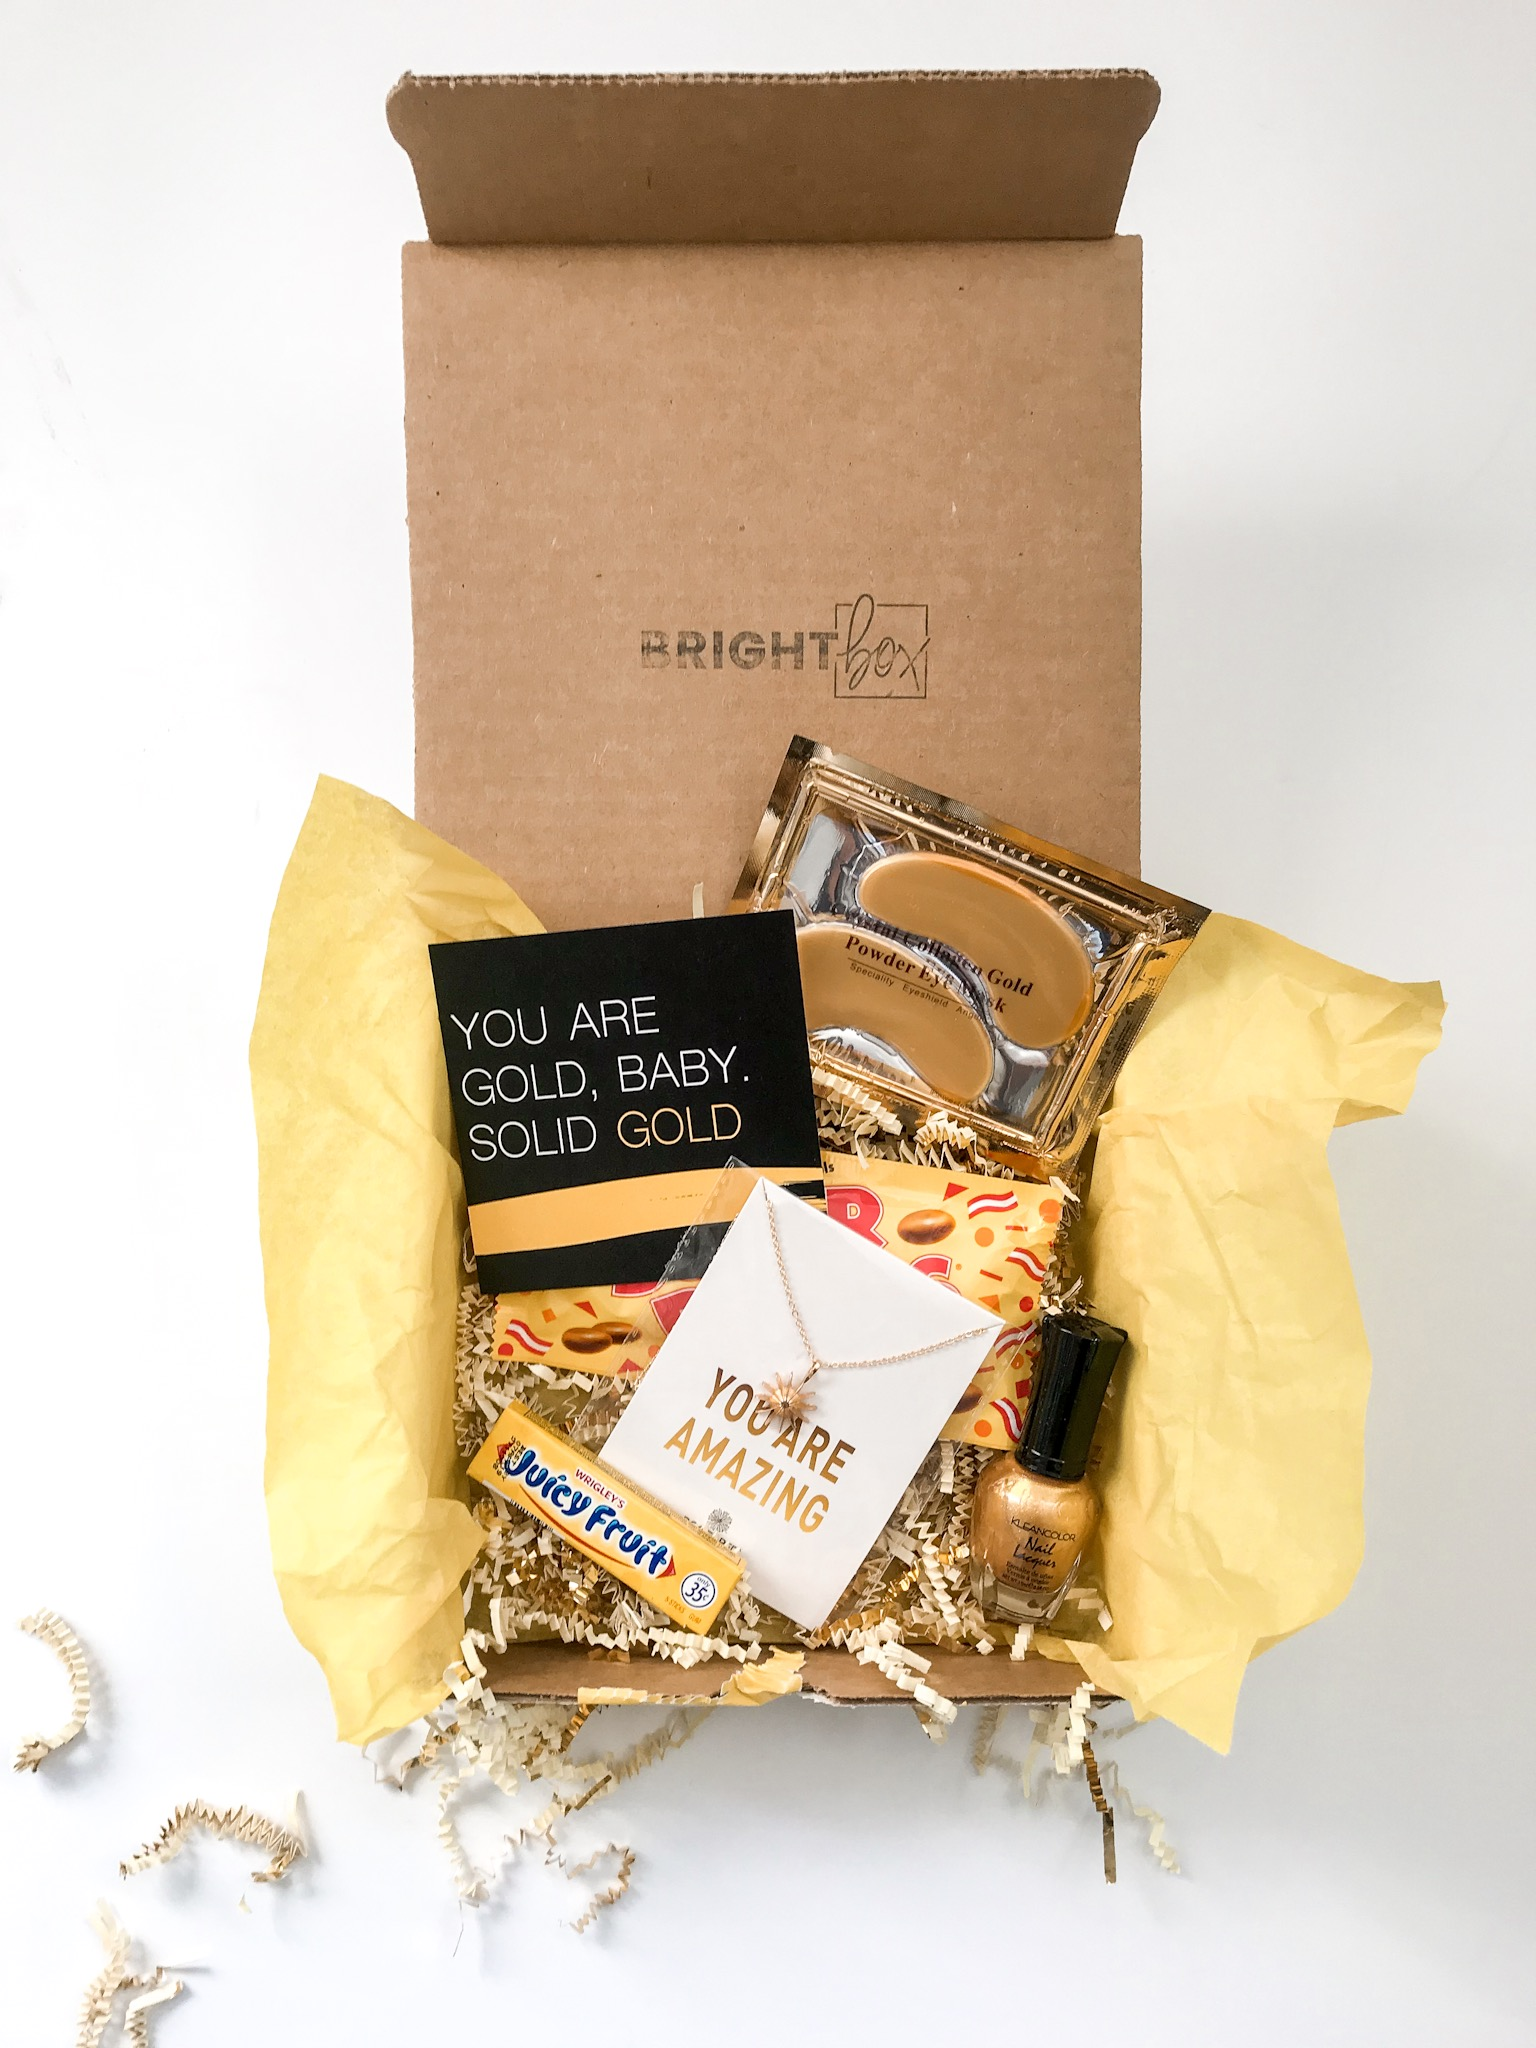 BrightBoxes - Send love in $5,$10, & $15 boxes from BrightBoxes